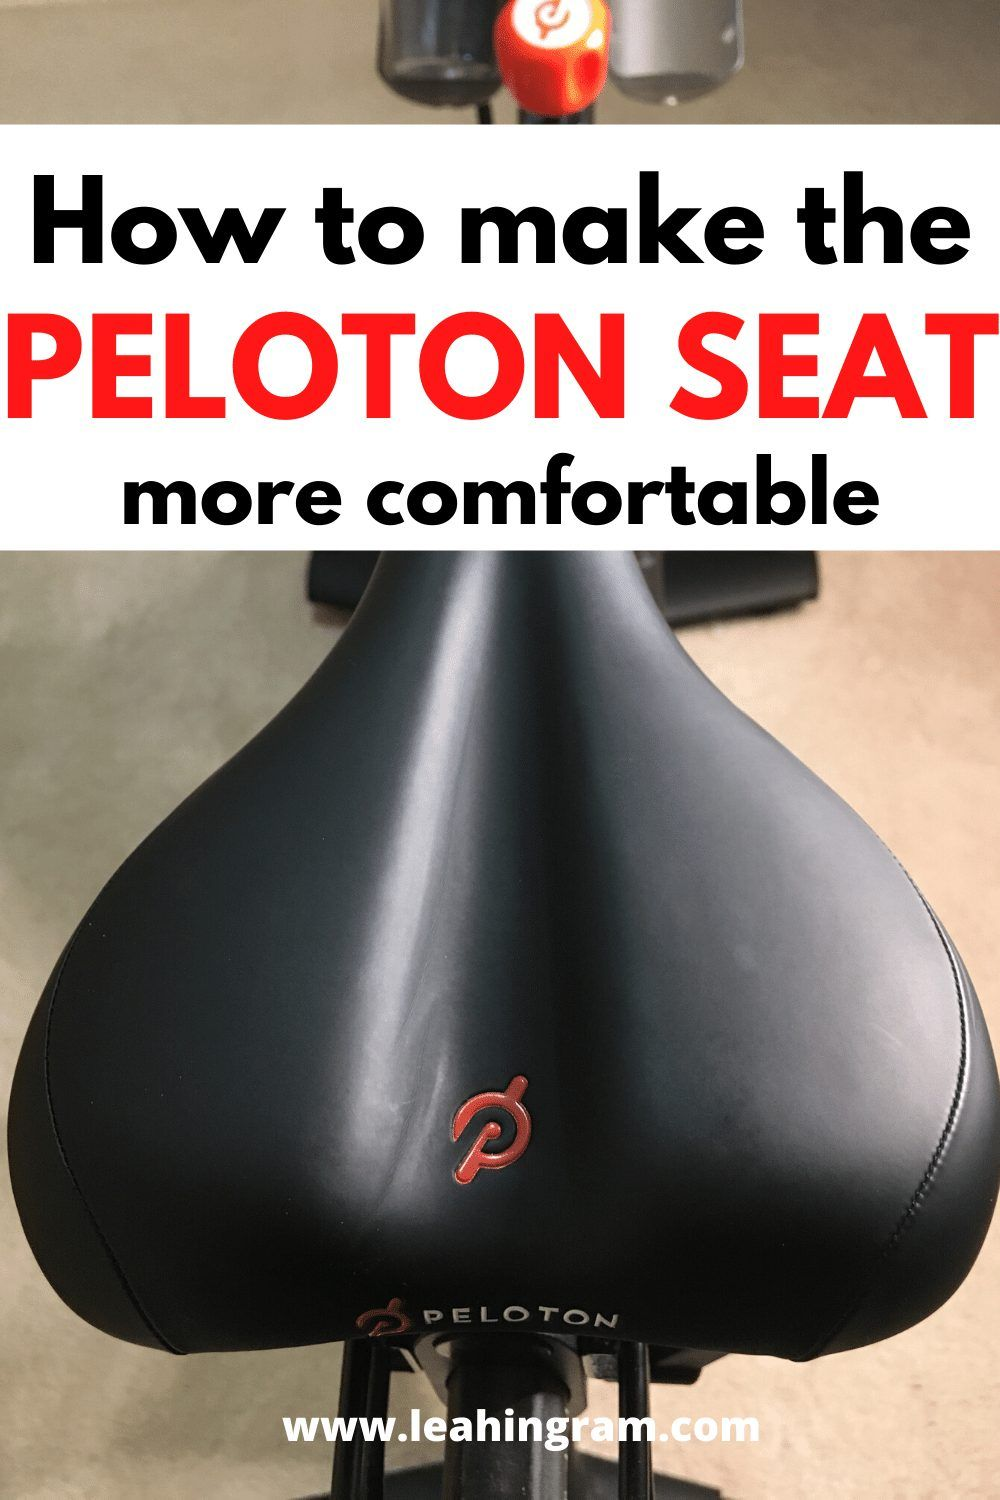 How To Make The Peloton Seat More Comfortable In 2020 Peloton